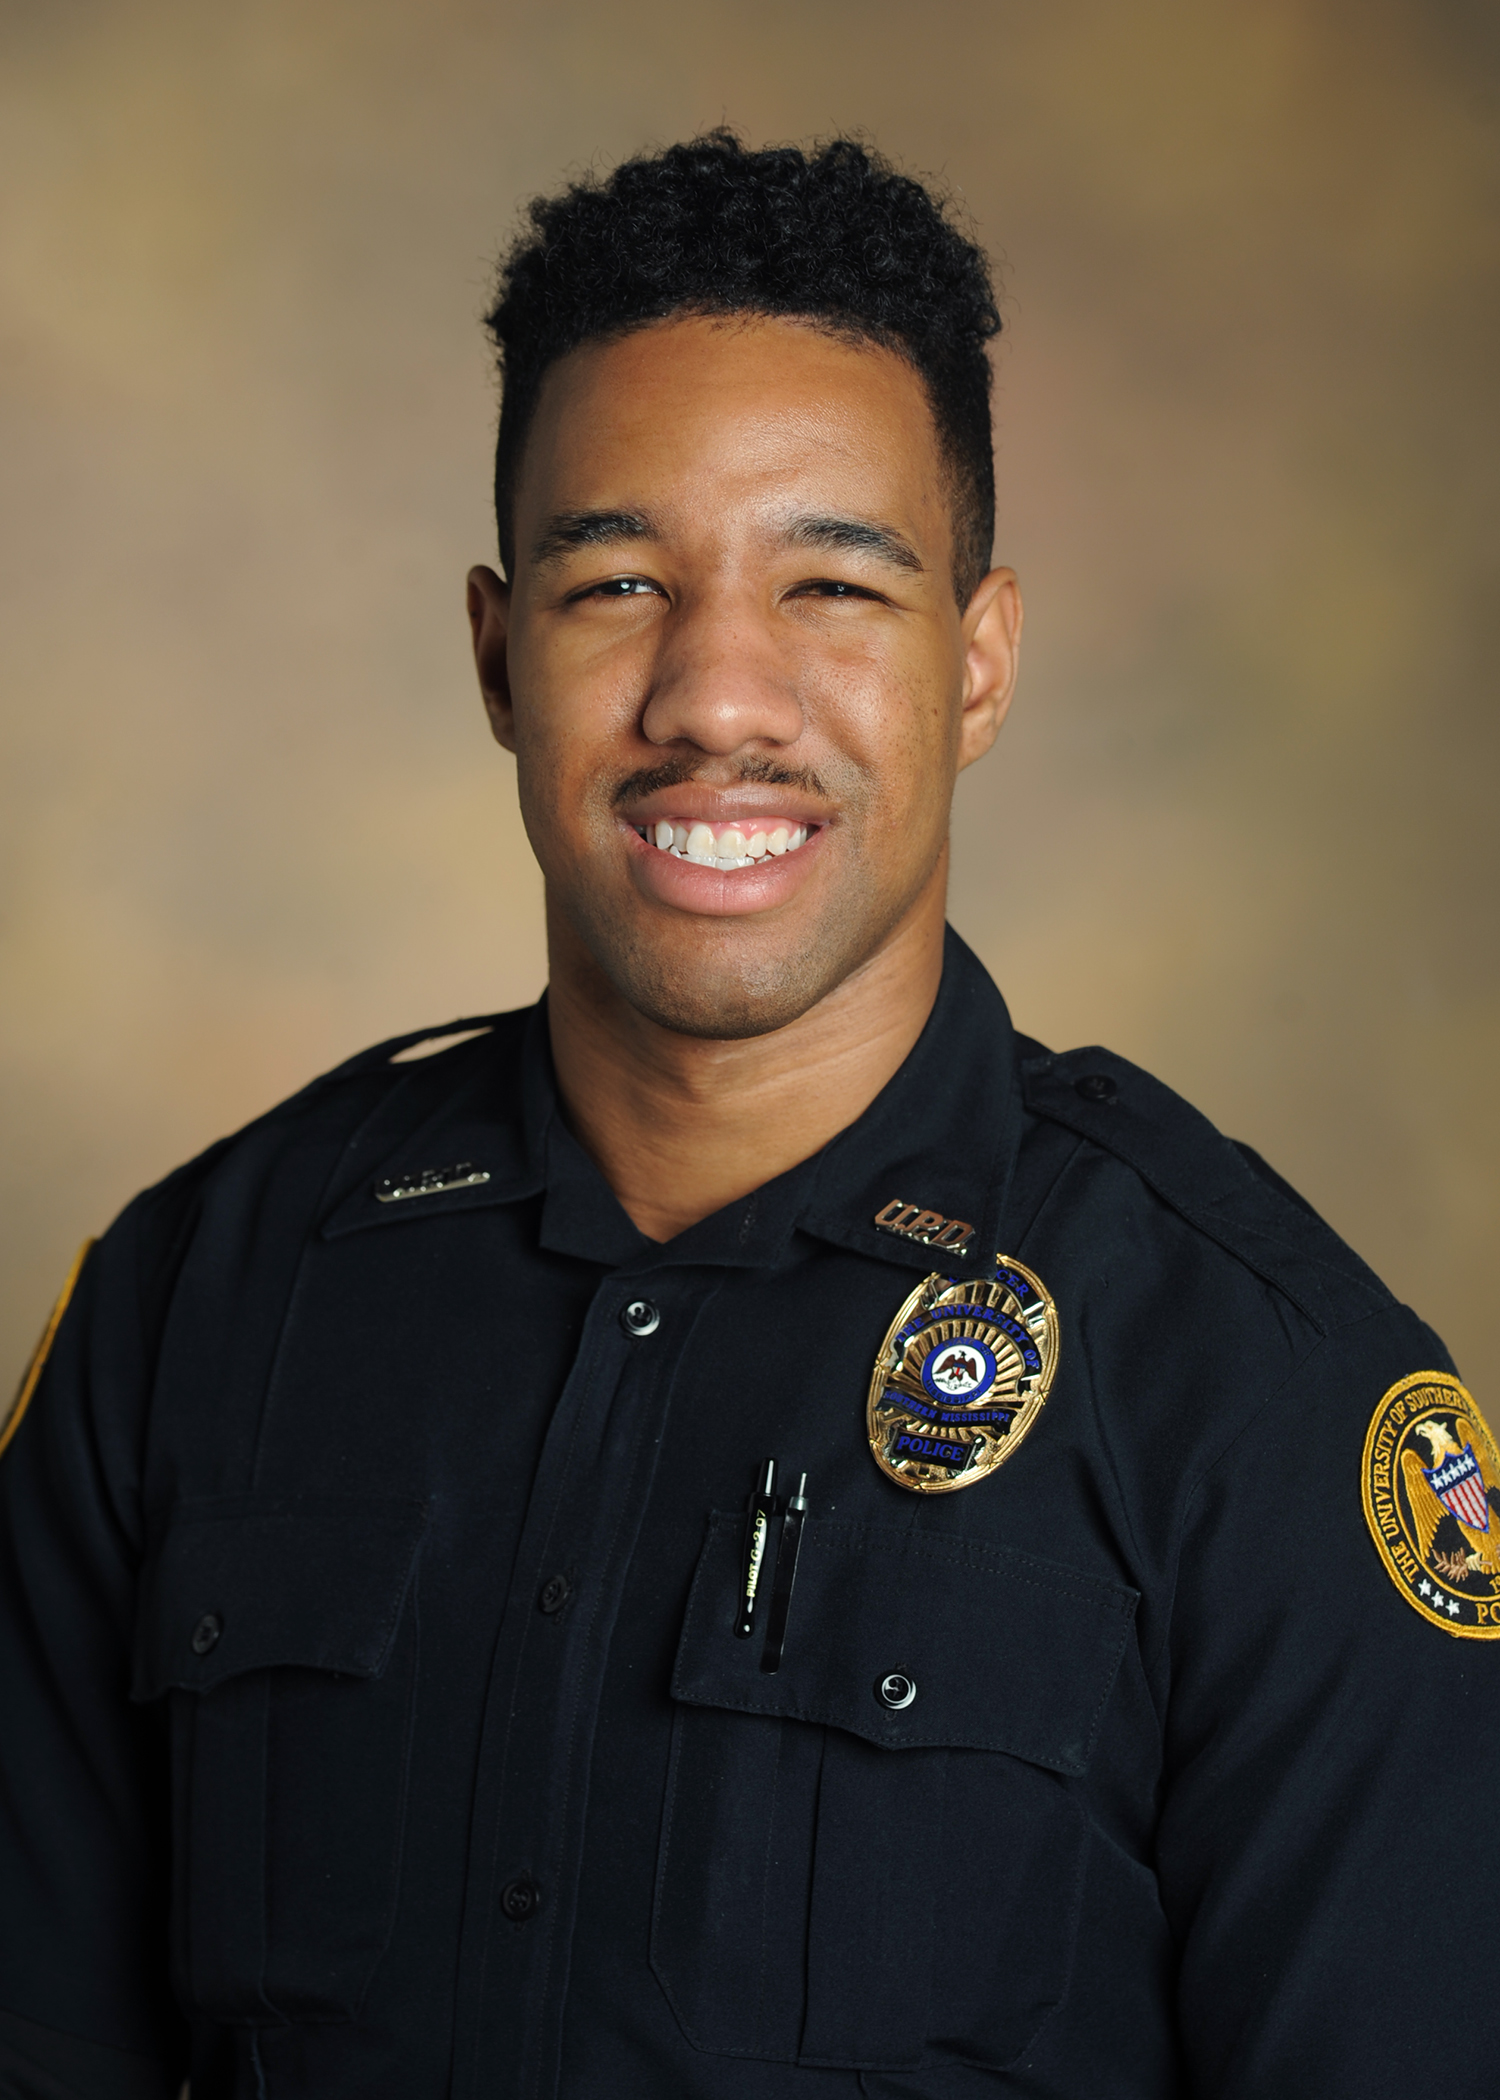 Officer Justus Smith